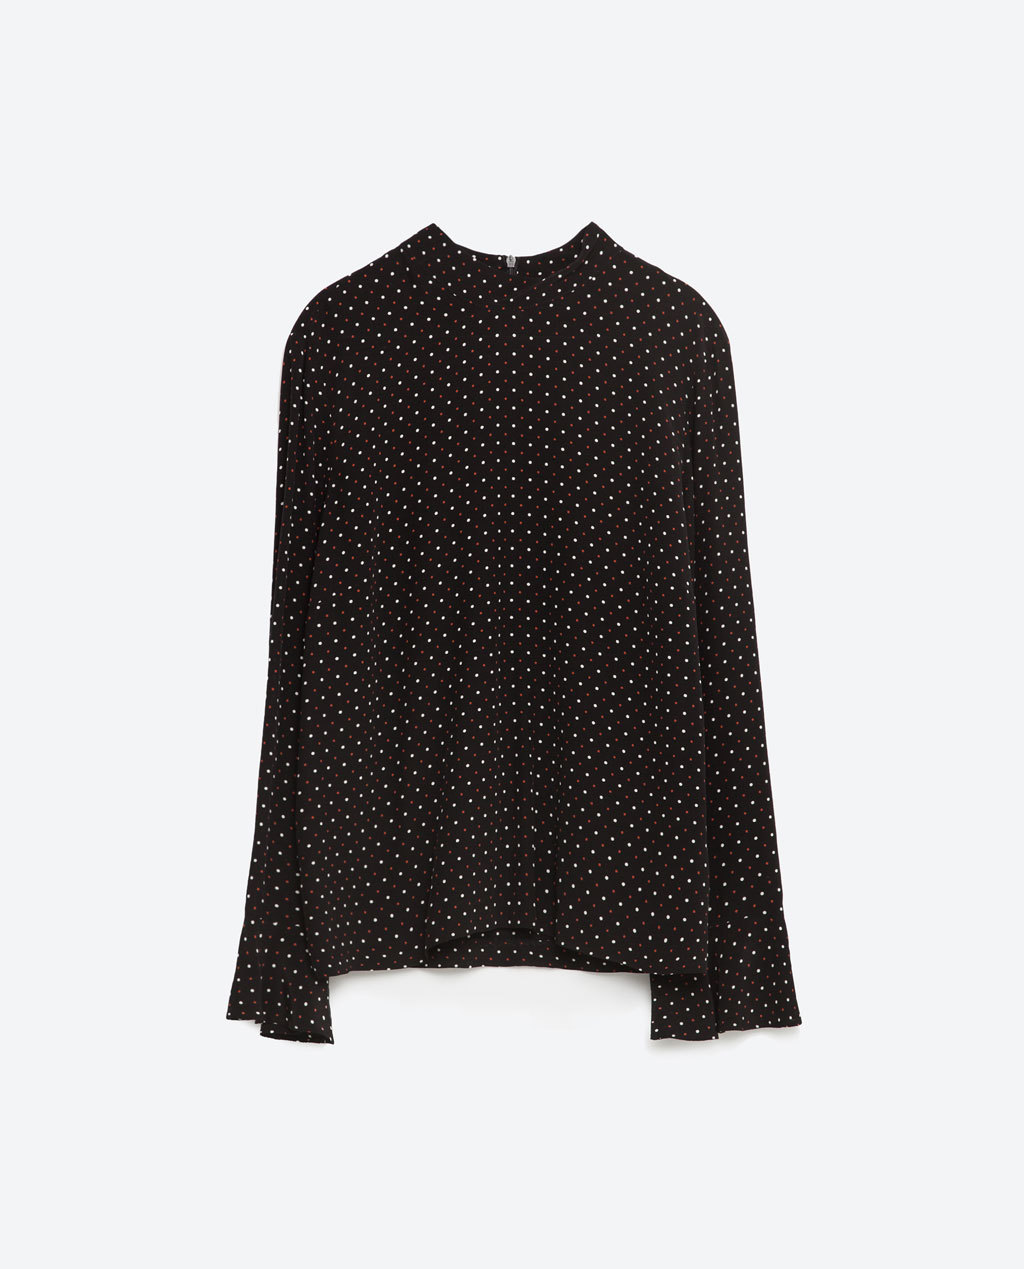 Printed Blouse - neckline: high neck; style: blouse; pattern: polka dot; secondary colour: white; predominant colour: black; occasions: casual; length: standard; fibres: viscose/rayon - 100%; fit: body skimming; sleeve length: long sleeve; sleeve style: standard; trends: monochrome; texture group: crepes; pattern type: fabric; season: s/s 2016; wardrobe: highlight